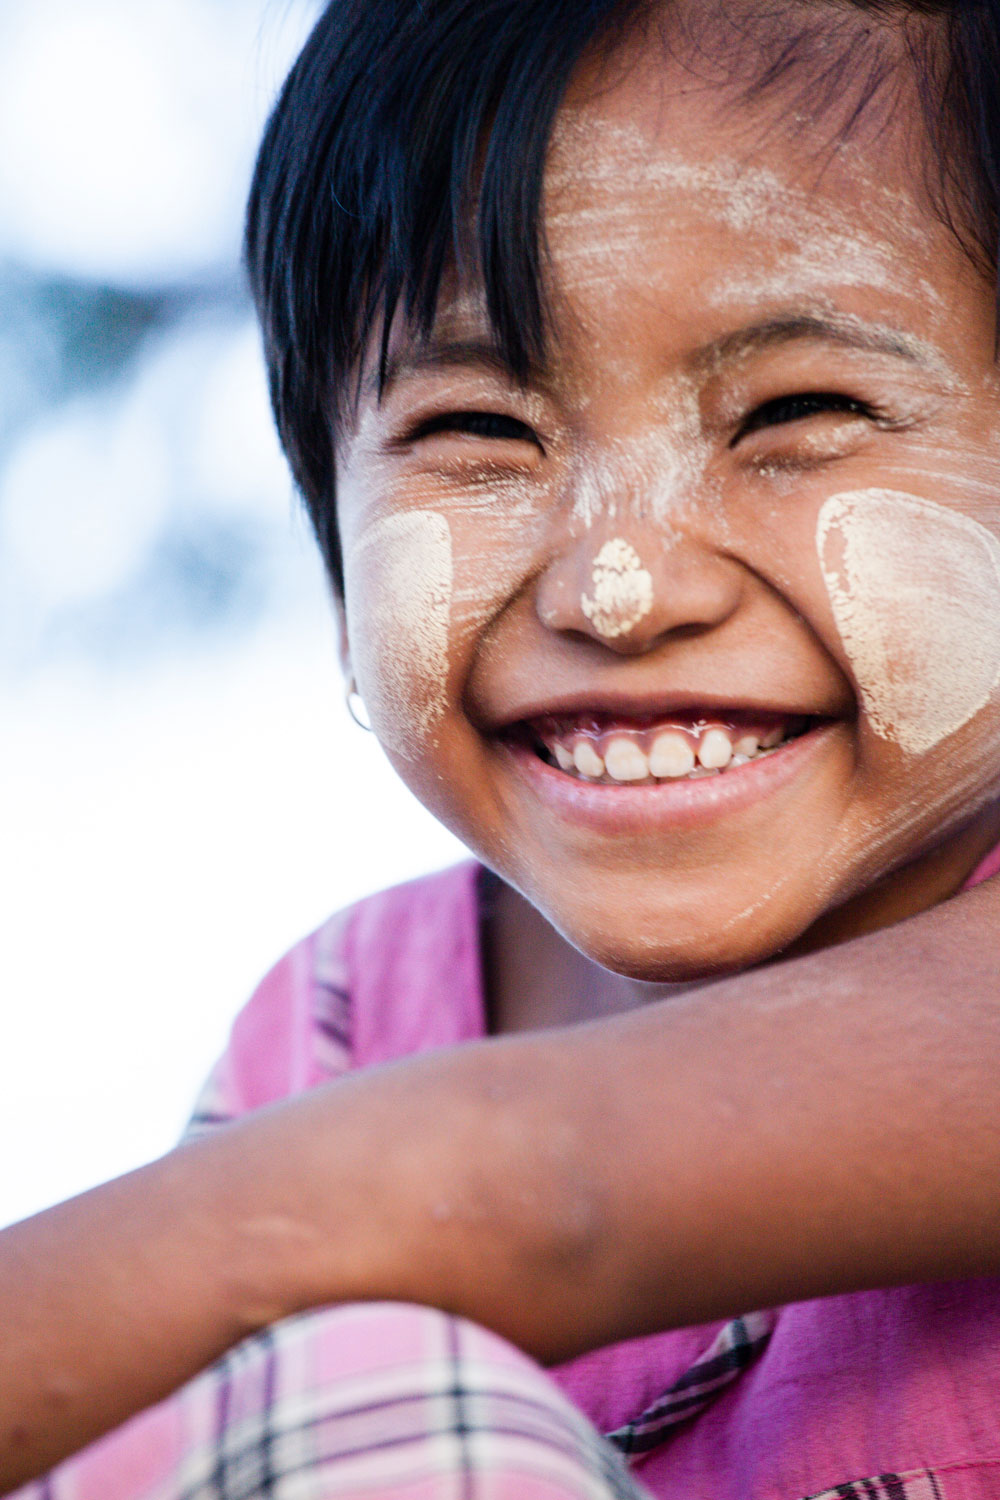 Myanmar's sunscreen